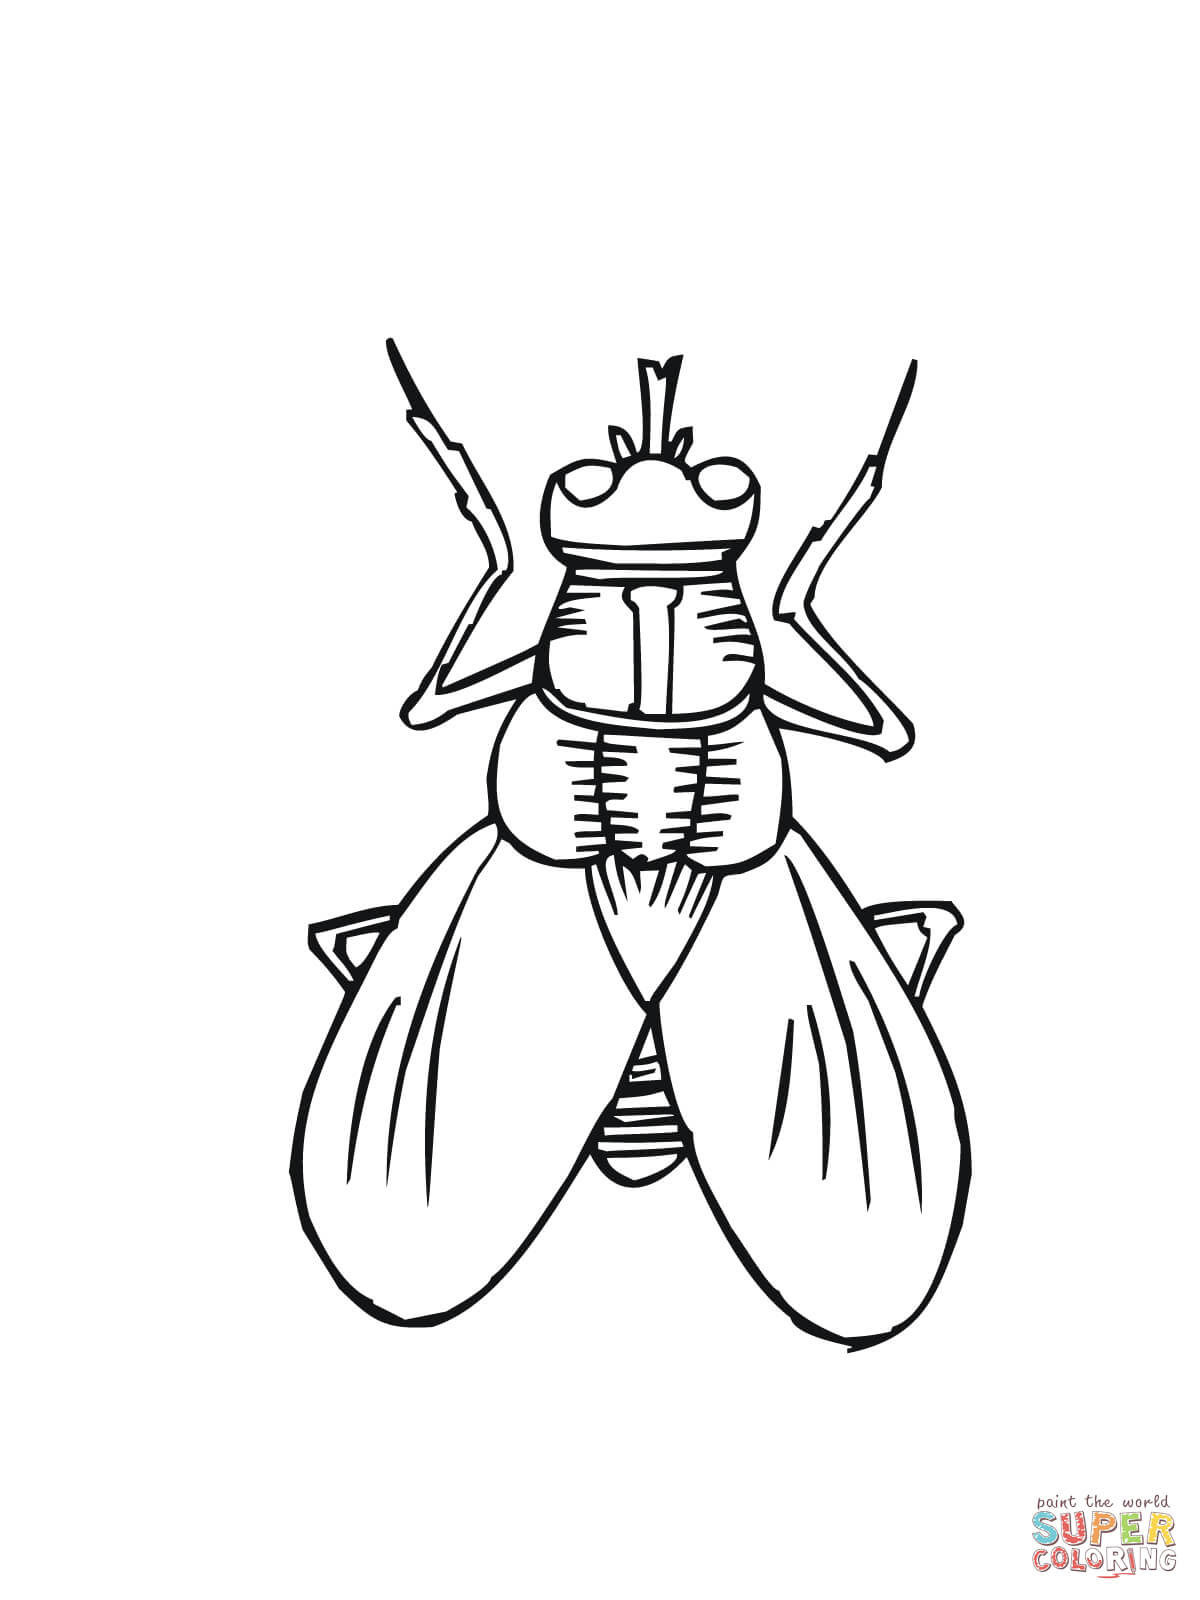 Horse-fly coloring, Download Horse-fly coloring for free 2019